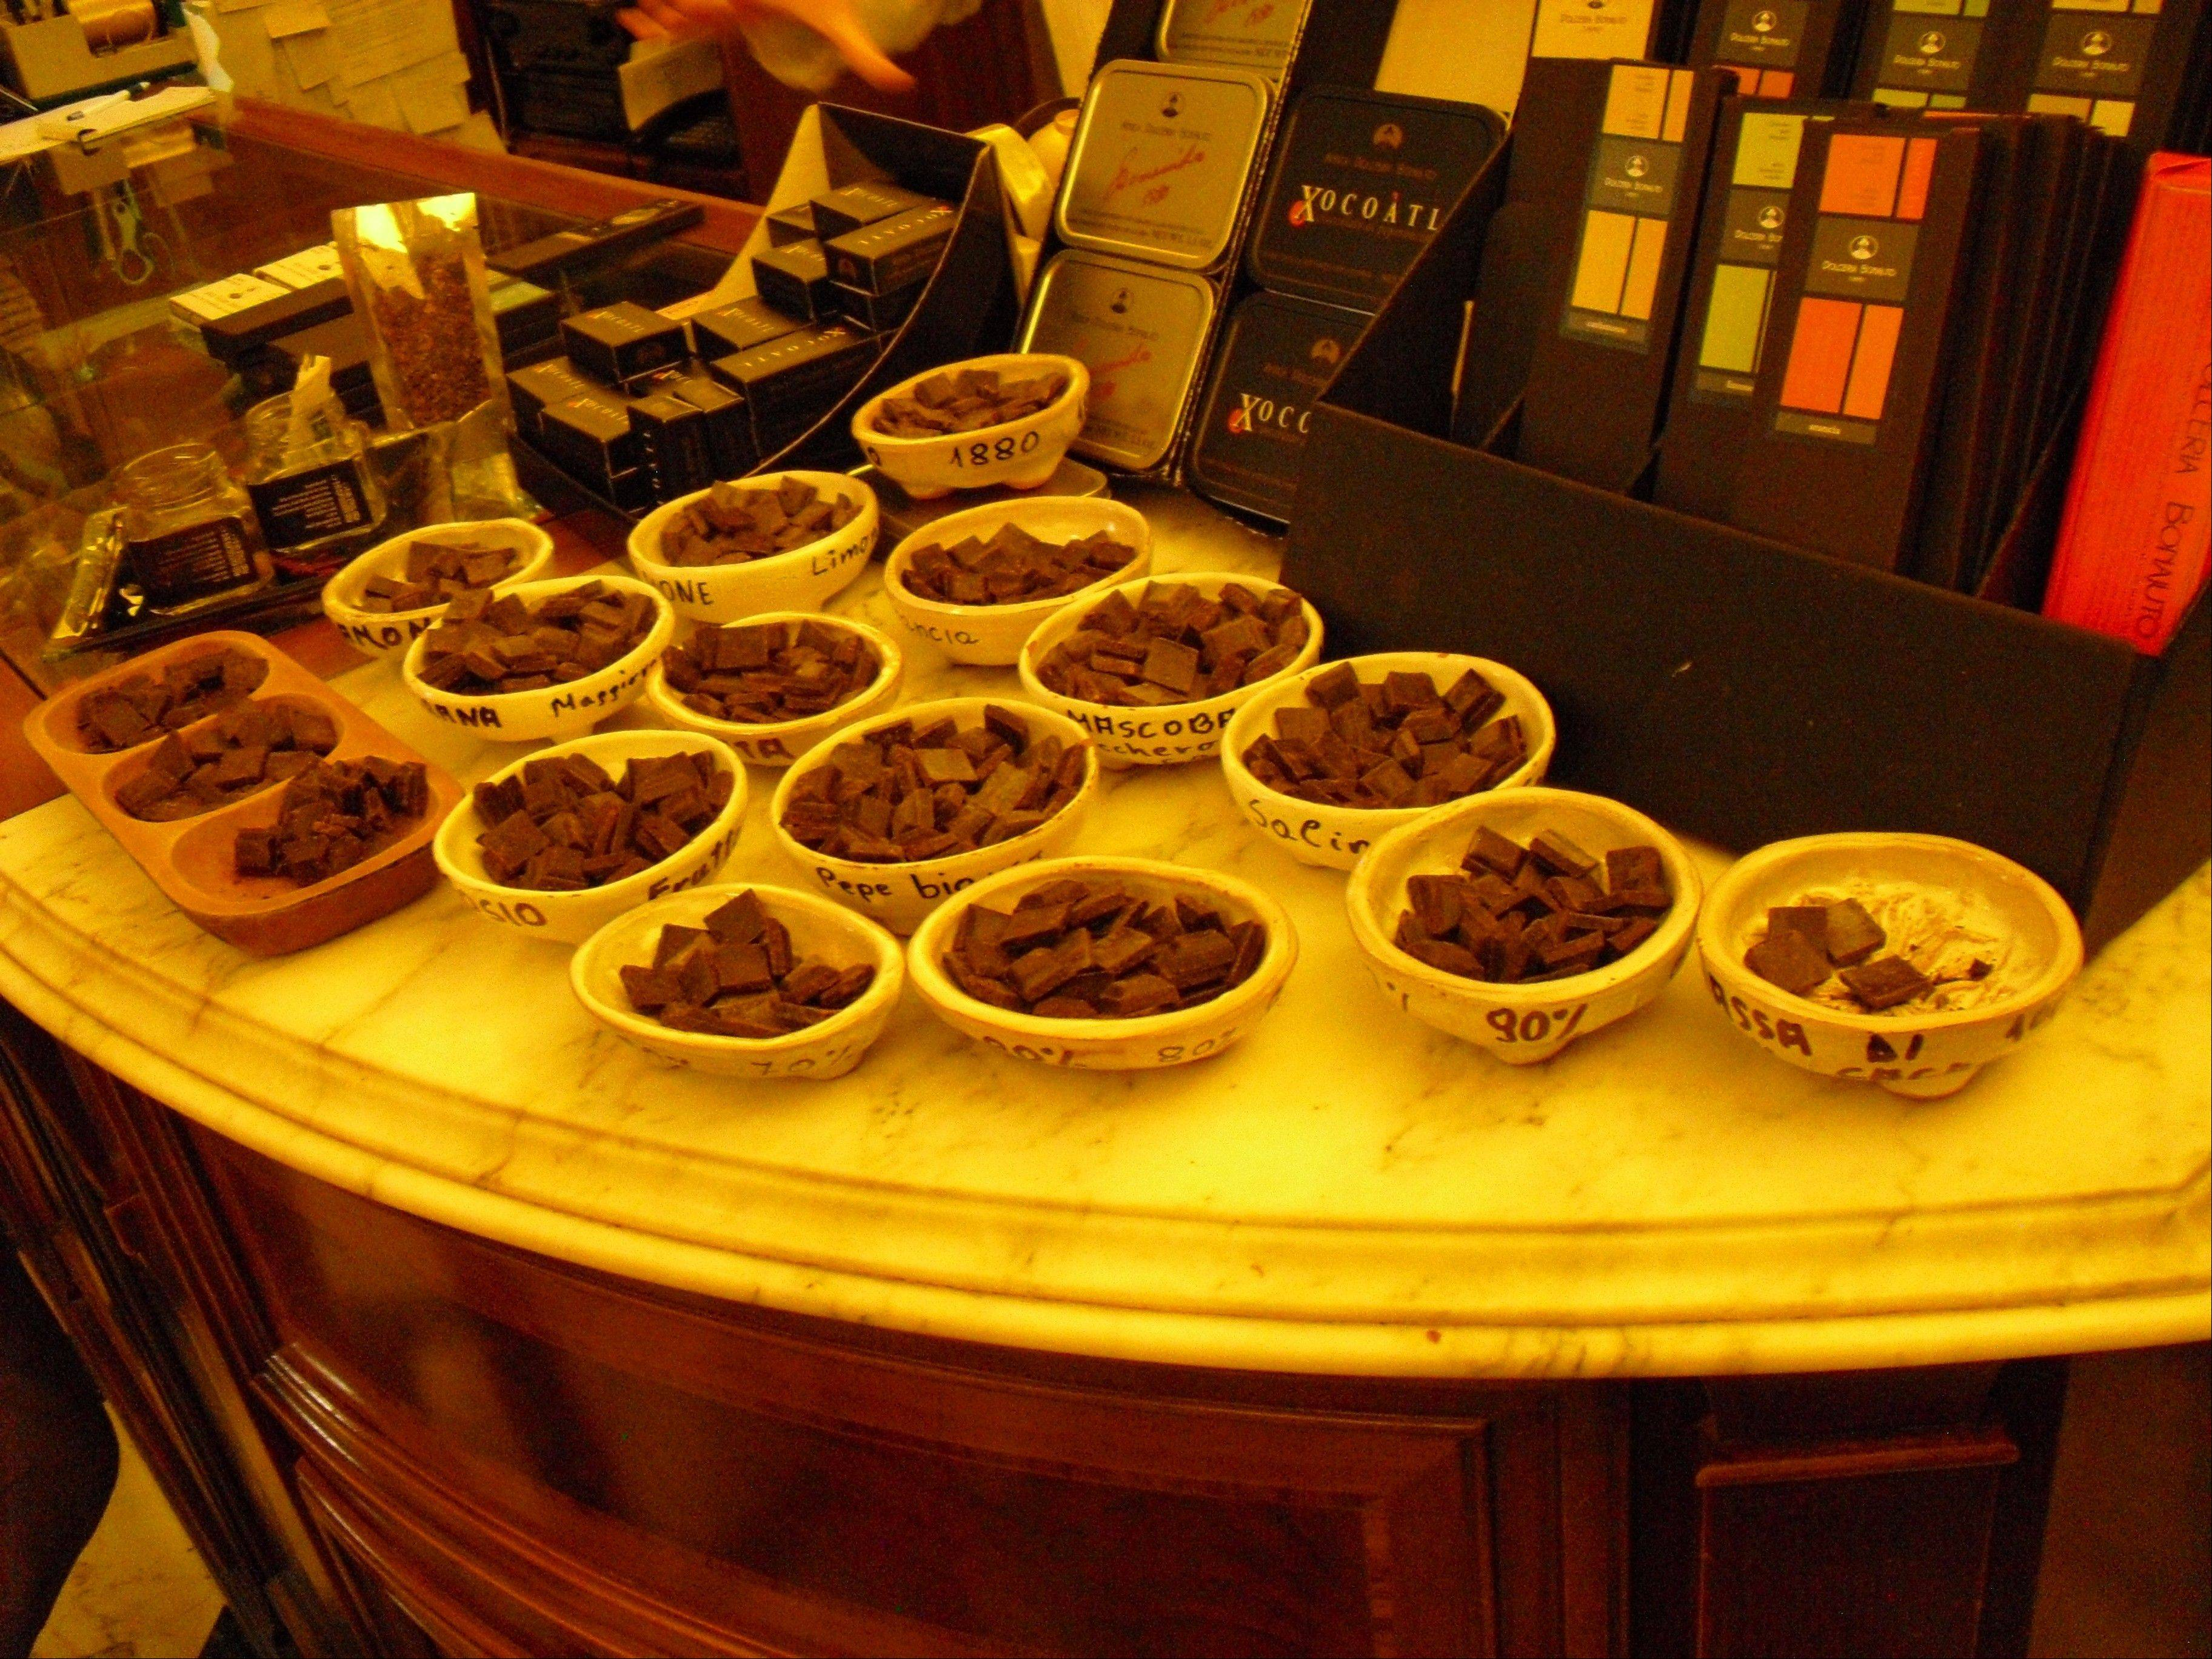 Antica Dolceria Bonajuto offers up free samples of its different types of chocolates in Modica. The famed Sicilian confectioner makes chocolate according to recipes and methods dating back to the Aztecs.